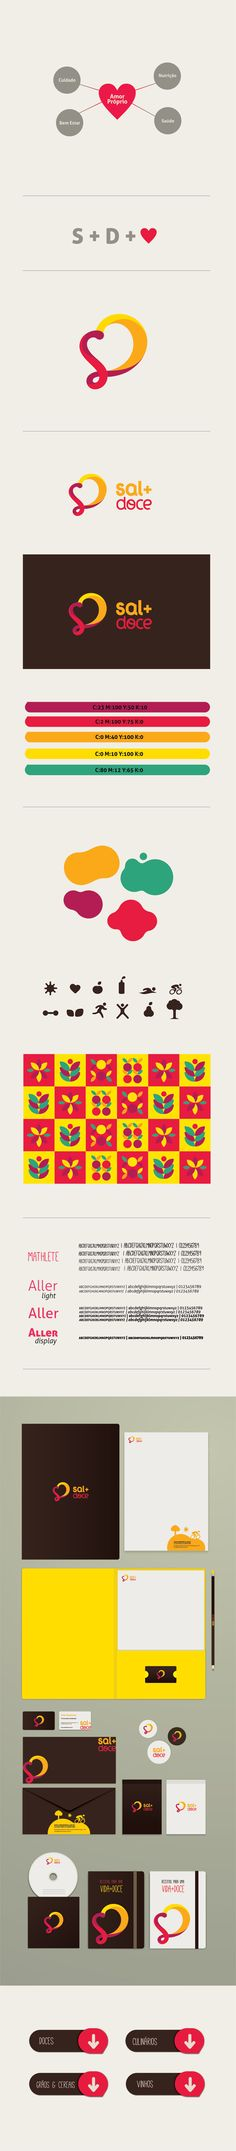 Sal + Doce by Amanda Louisi, via Behance